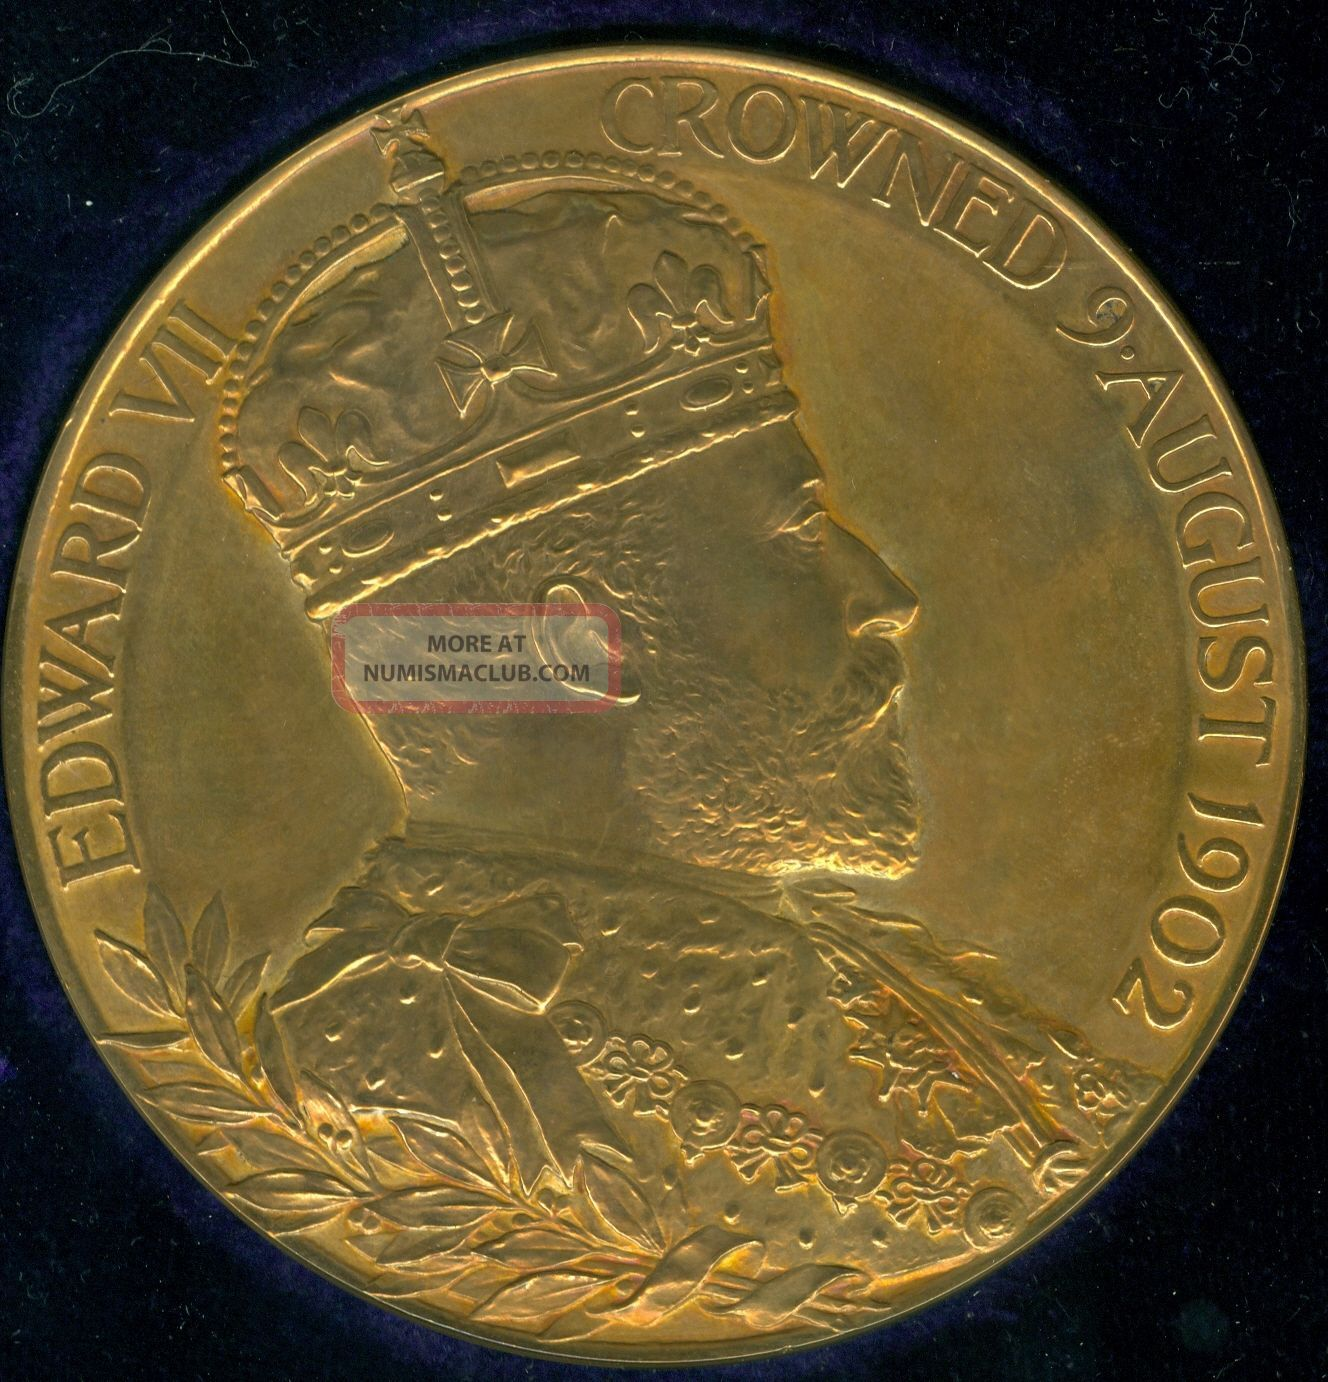 1902 King Edward Vii Coronation Celebration Medal,  Issued By Royal Exonumia photo